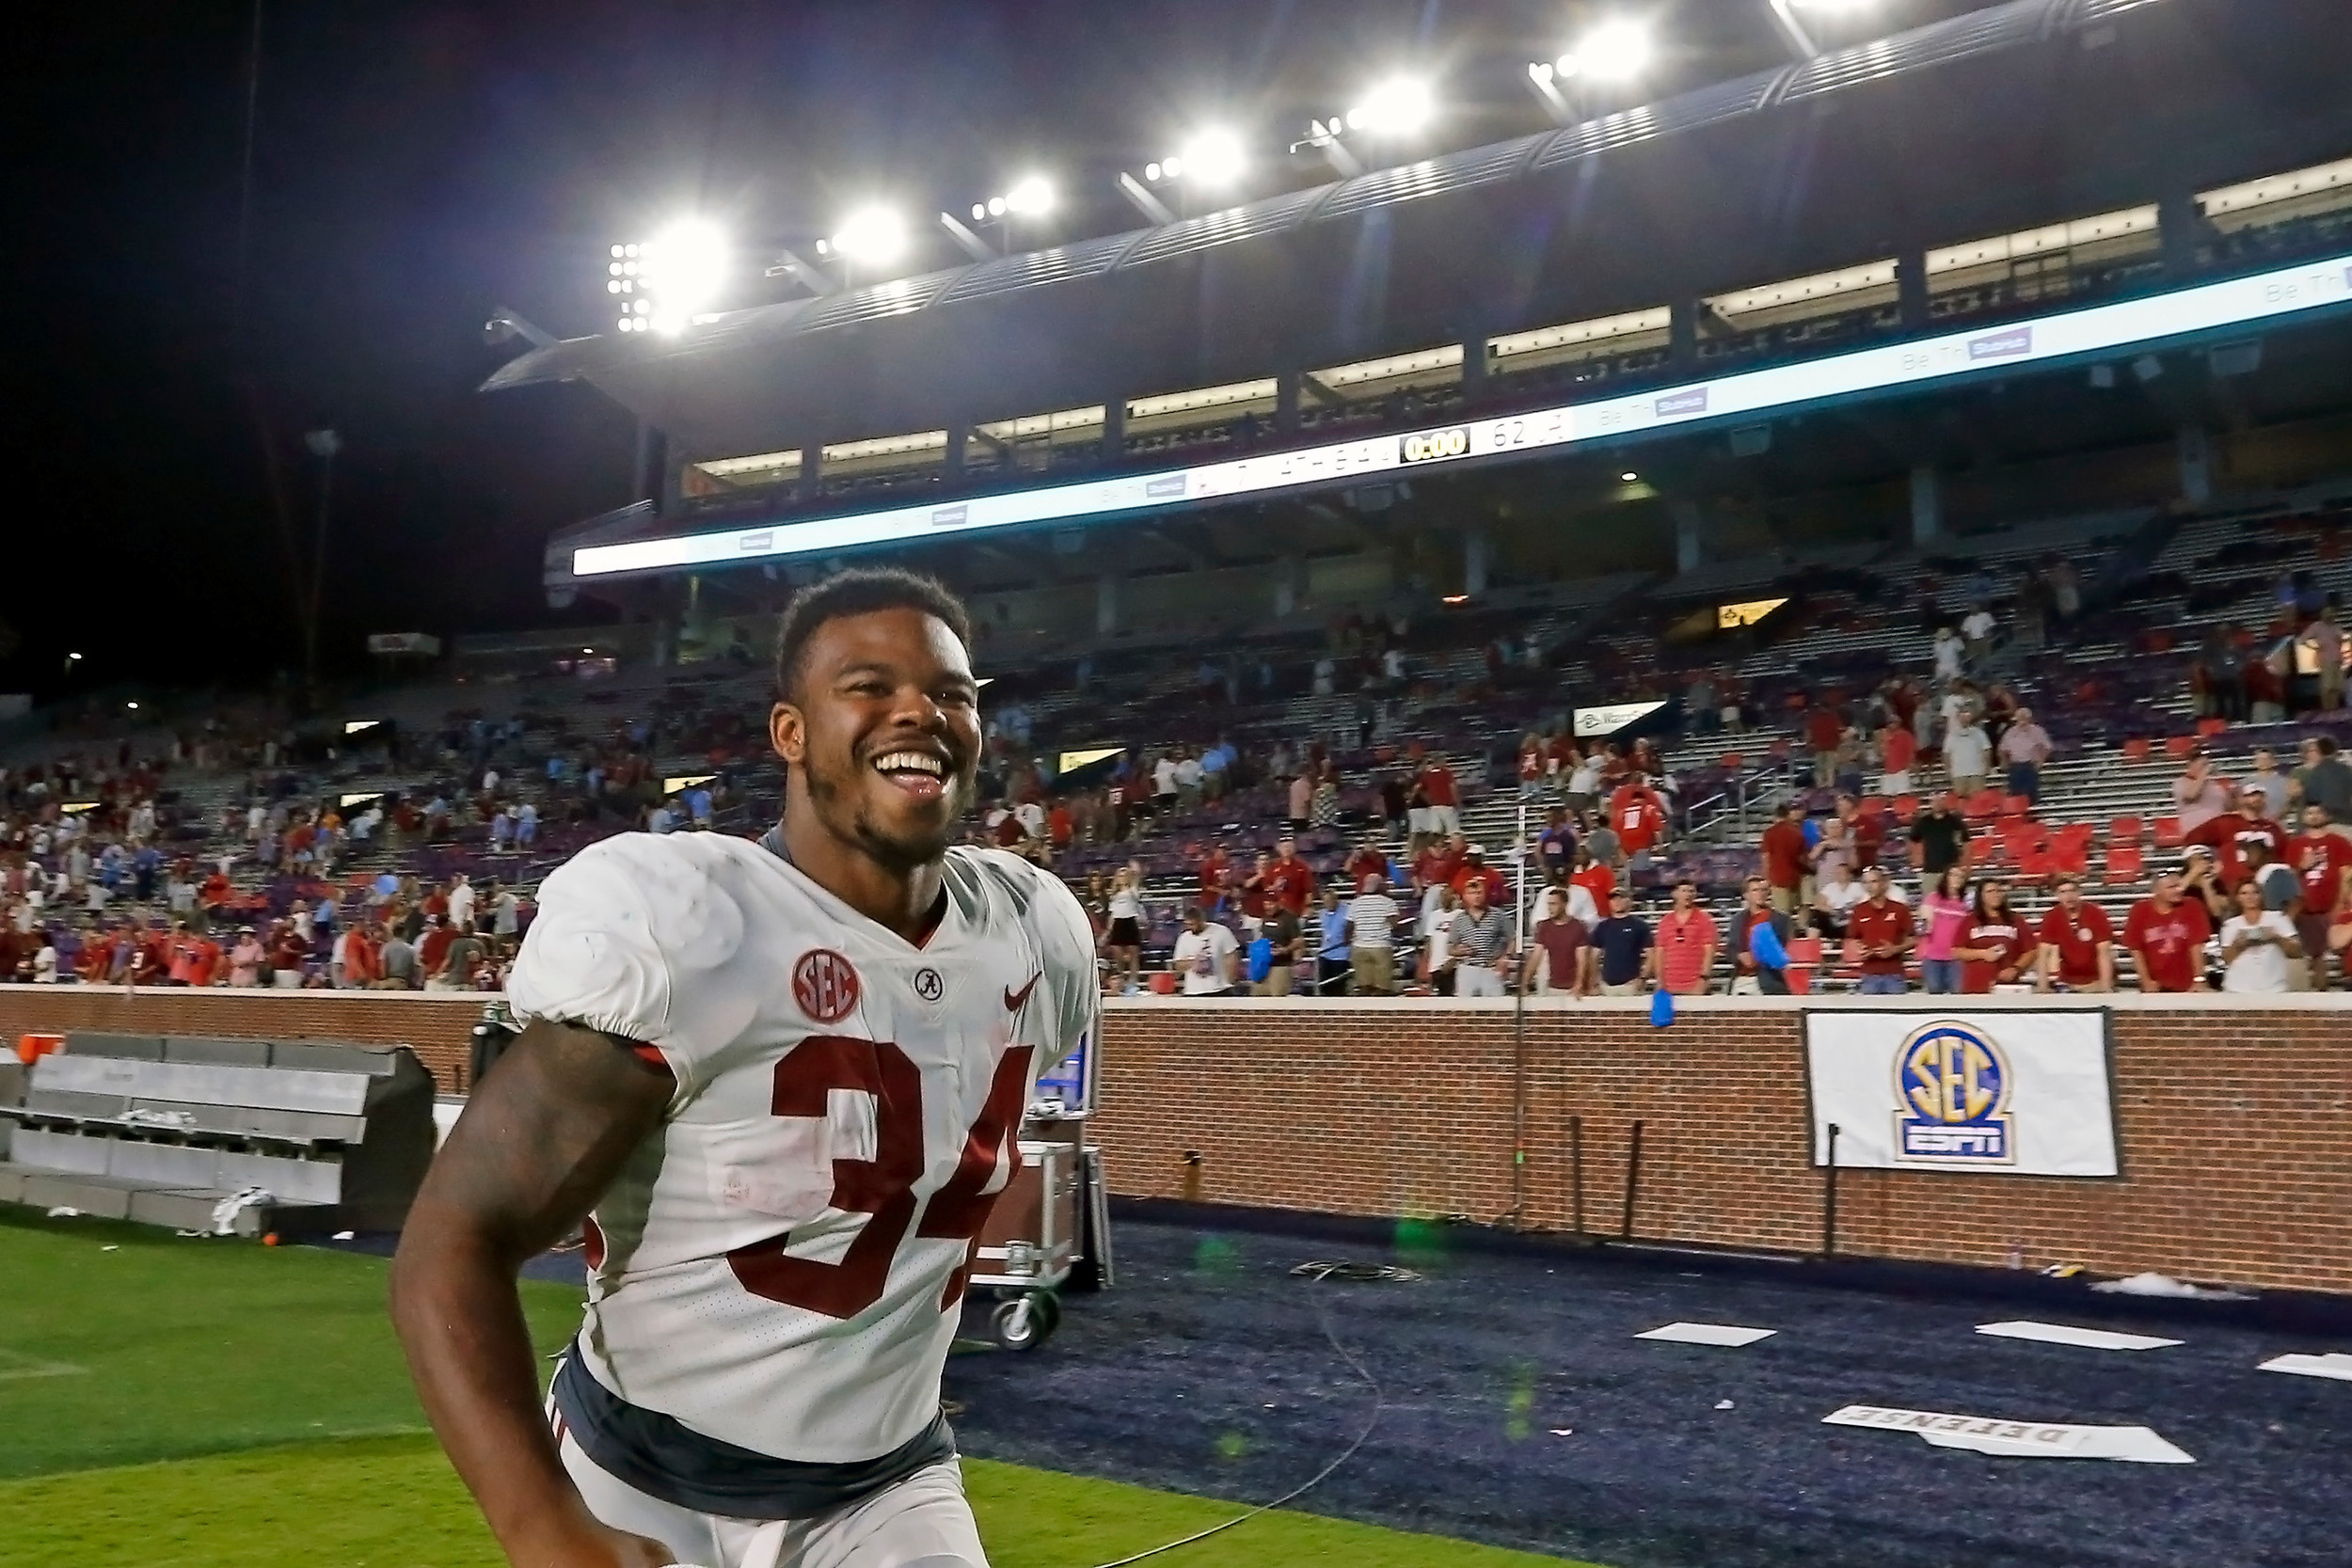 Alabama Crimson Tide running back Damien Harris (34) celebrating after a blowout win against Ole Miss at Vaught-Hemingway Stadium. Jason Clark / Daily Mountain Eagle